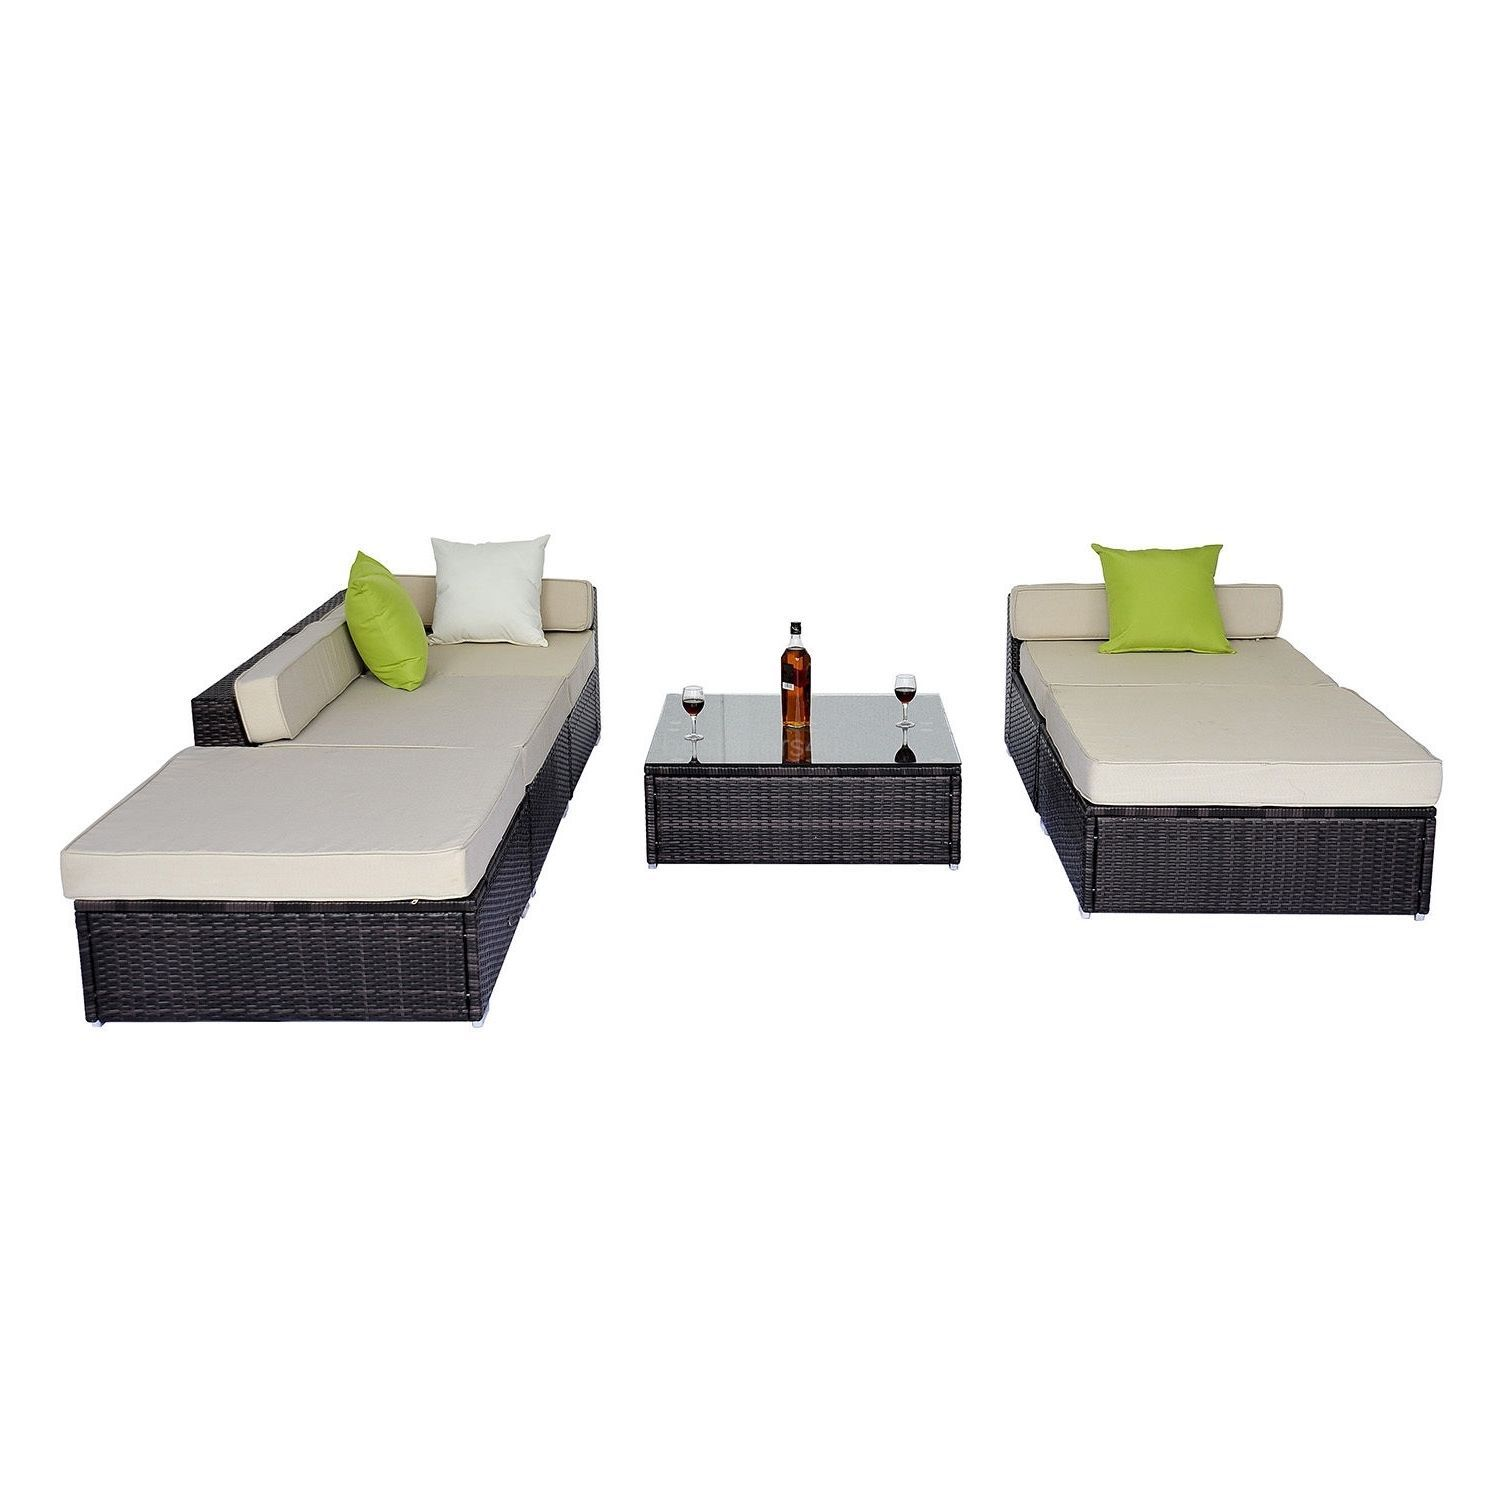 Garden Corner Sofa Rattan Set Luxury Wicker Conservatory Patio Furniture Brown image 9